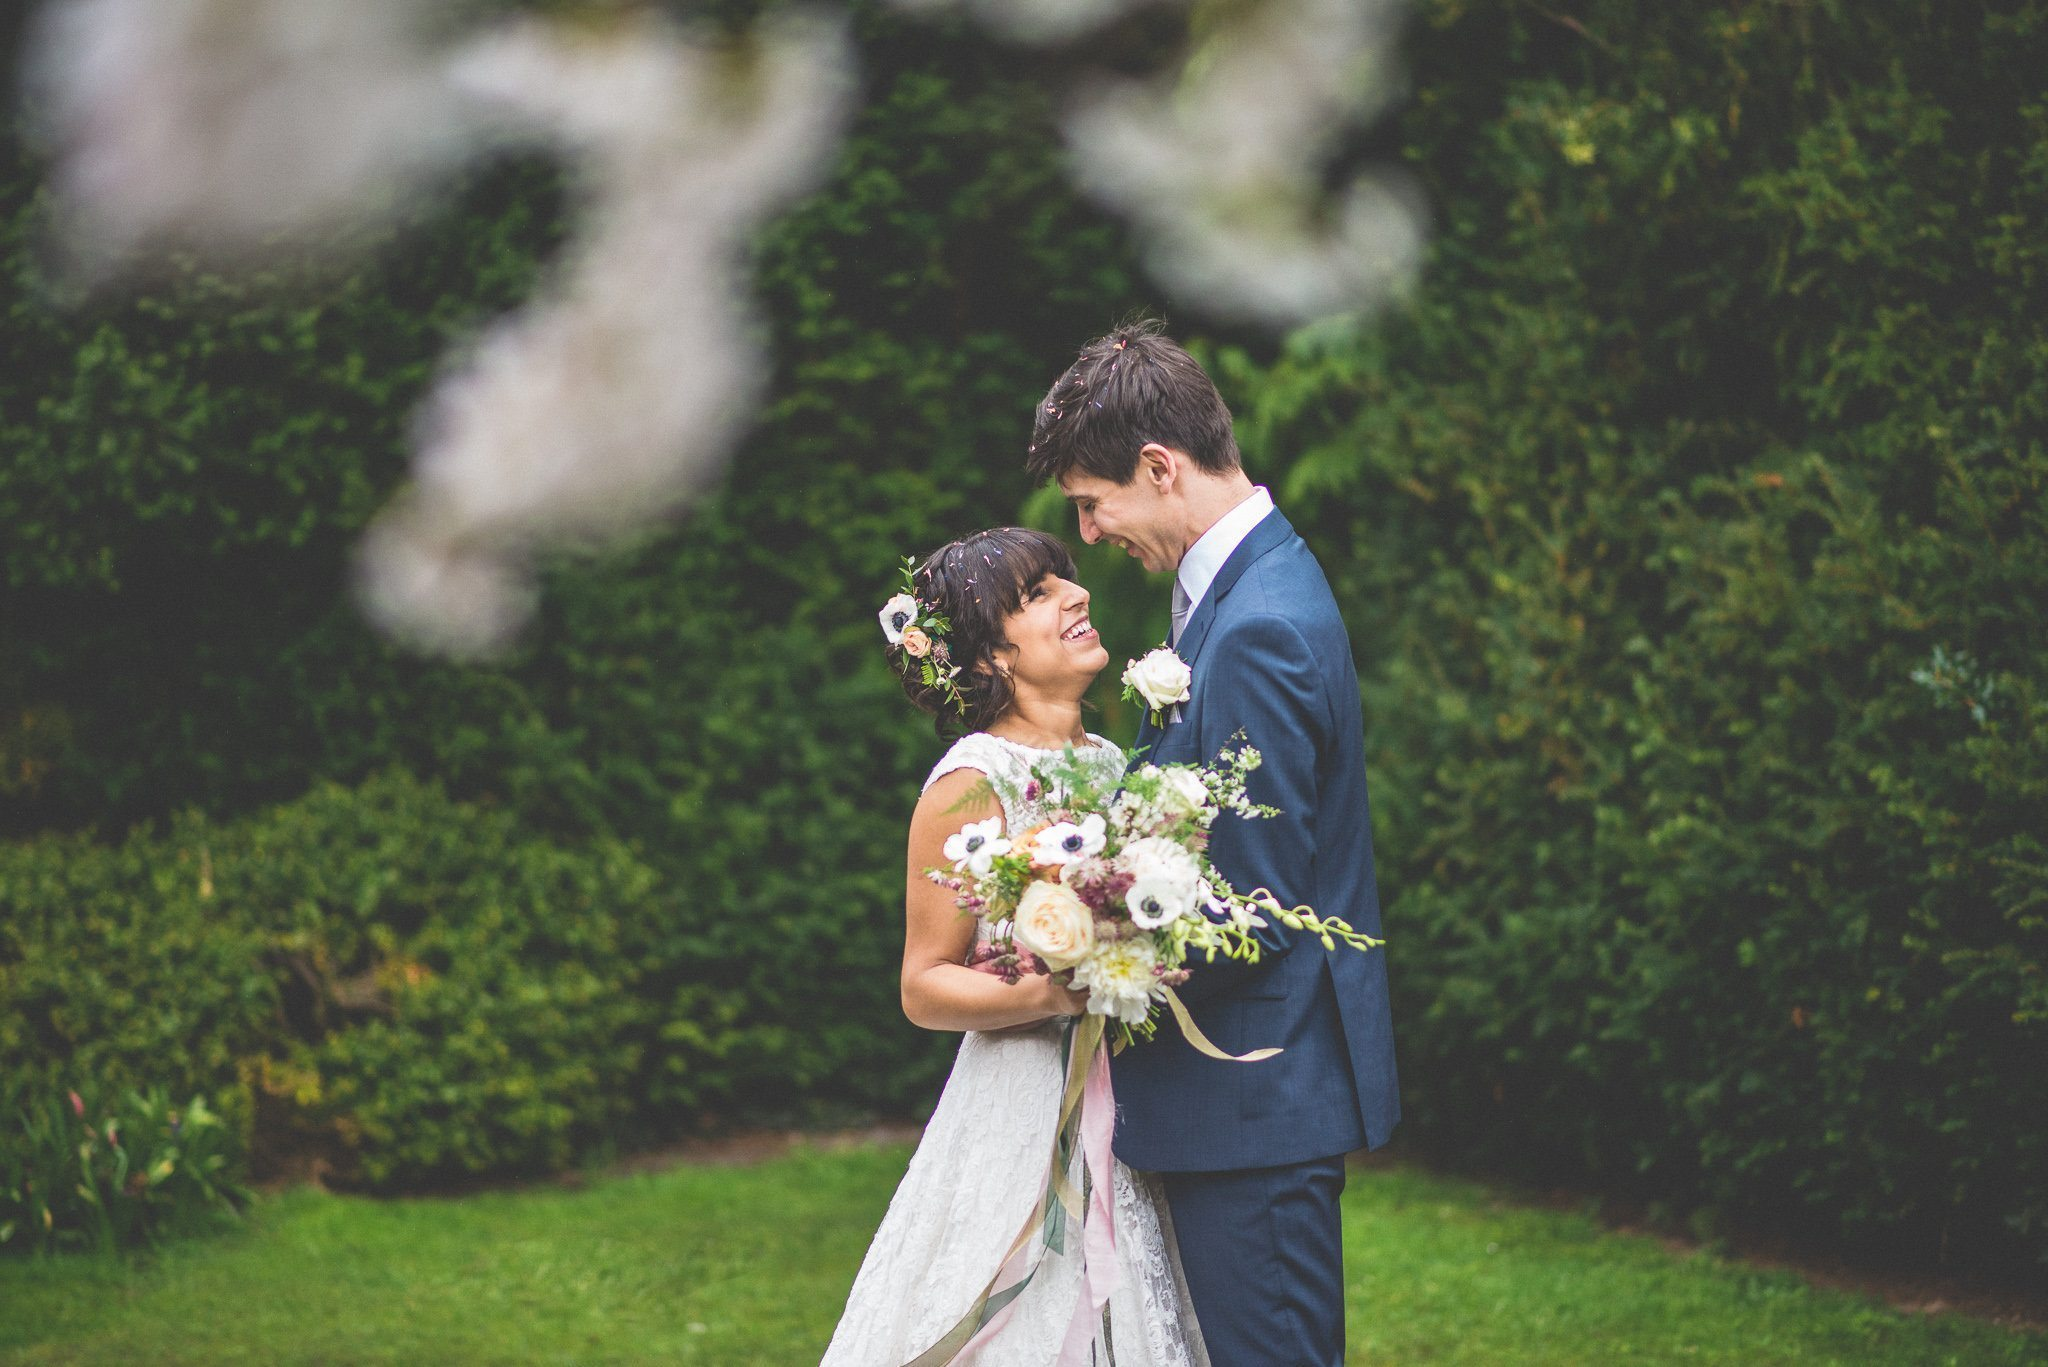 The couple go outside for their couple's portraits. Here, they are pictured through the branches of a blossom tree, looking lovingly at each other with confetti petals in their hair.